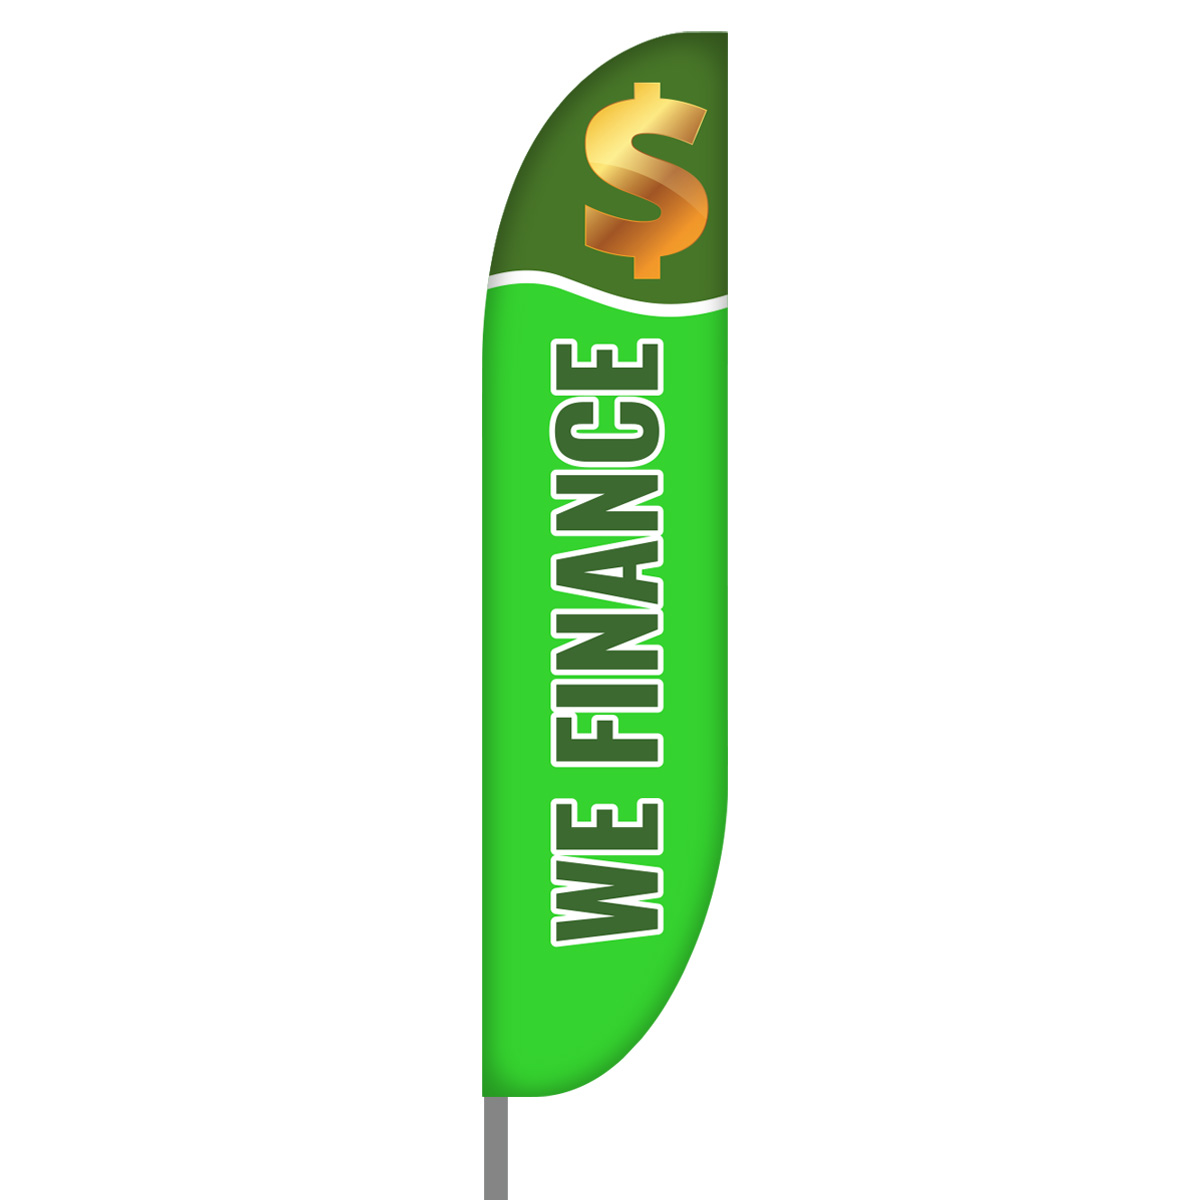 Financing Flag Design 03